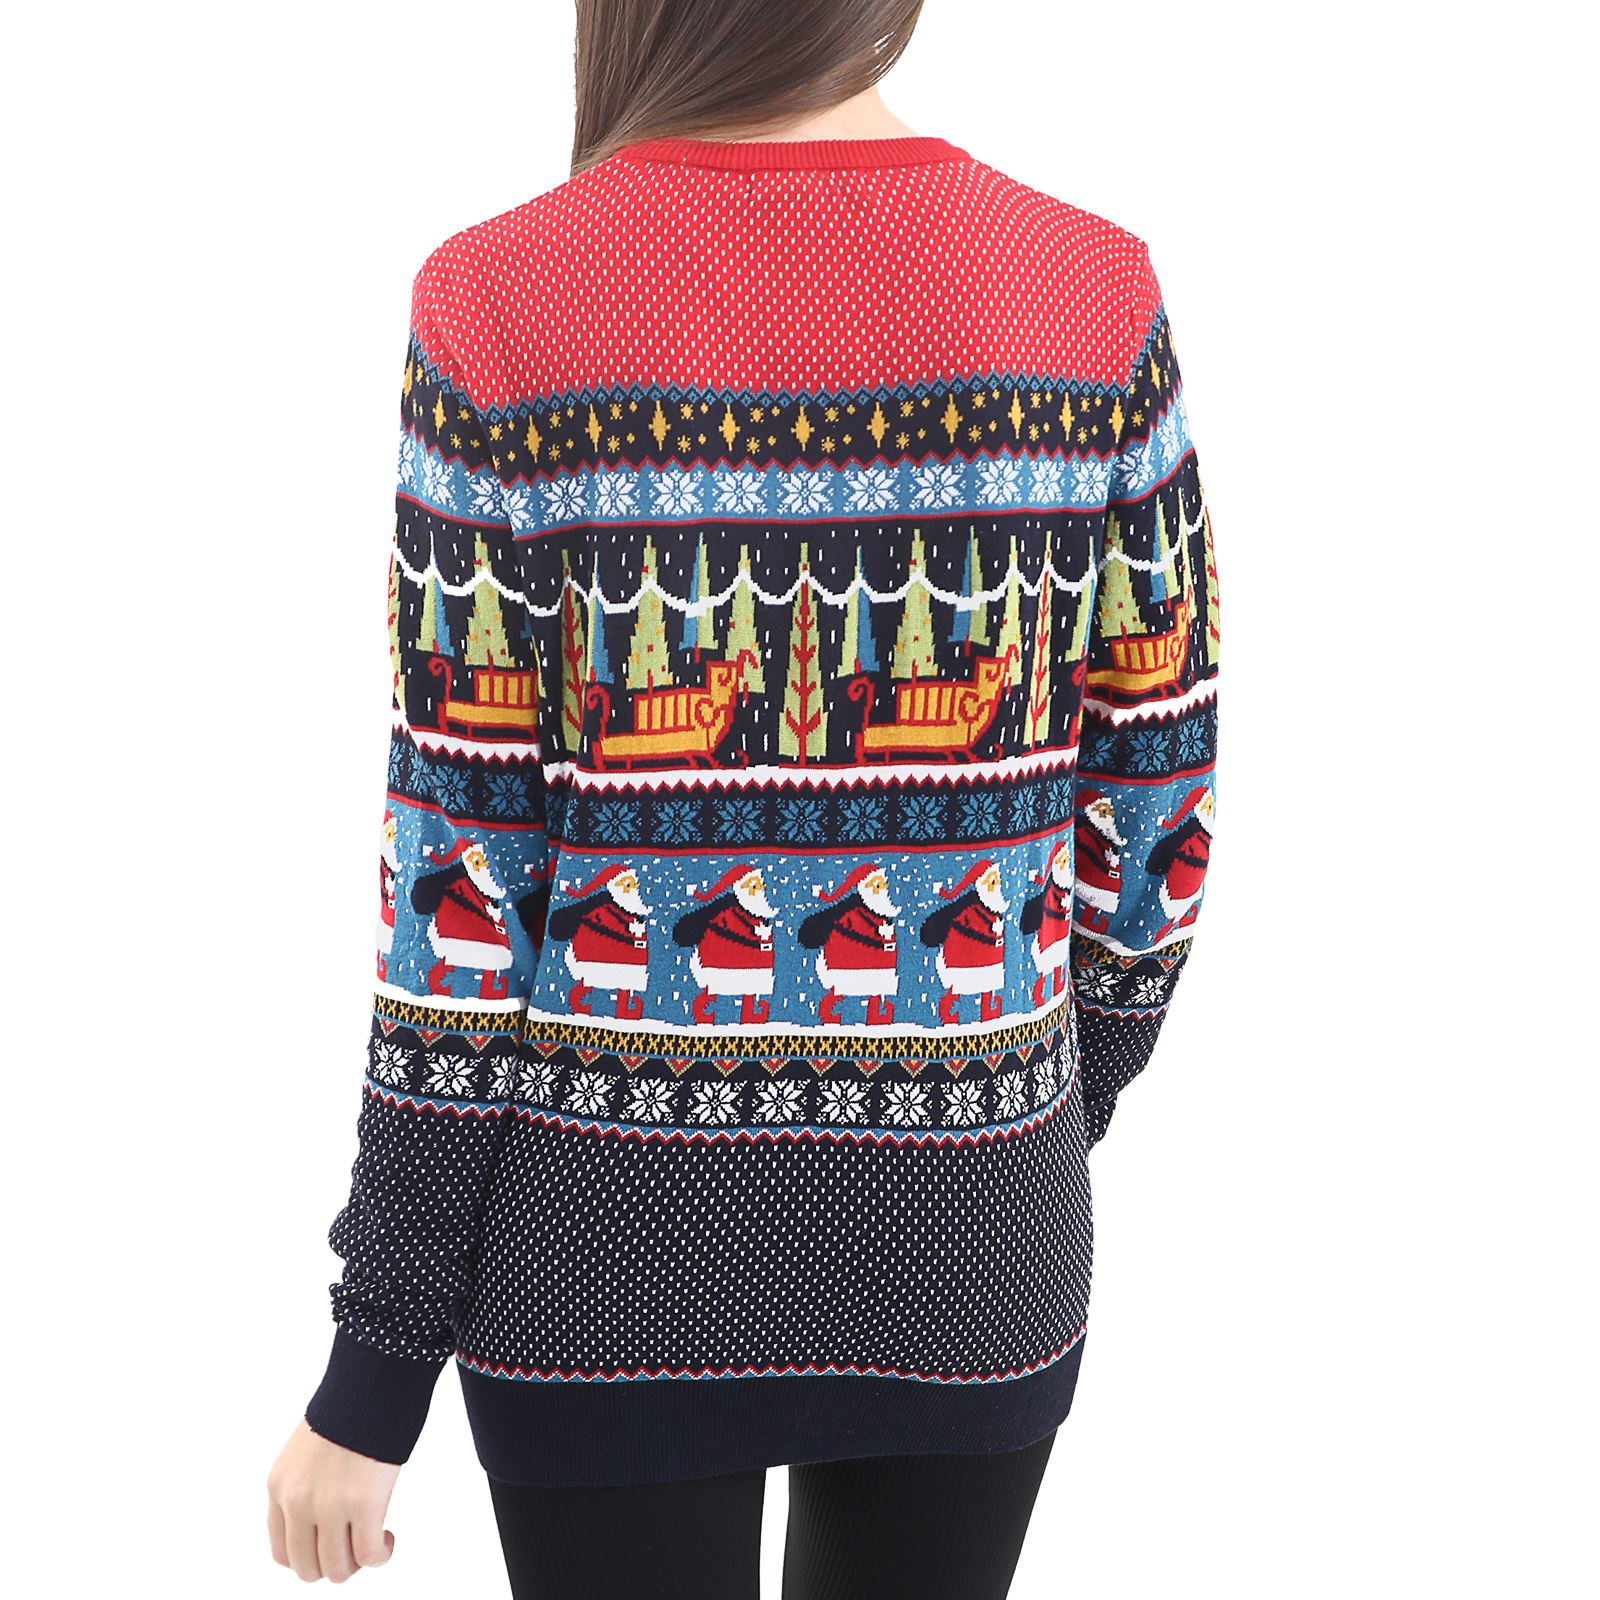 Mens-Ladies-Ex-Store-Matching-Christmas-Sweater-Jumper-Sweatshirt-Xmas-His-Hers thumbnail 16